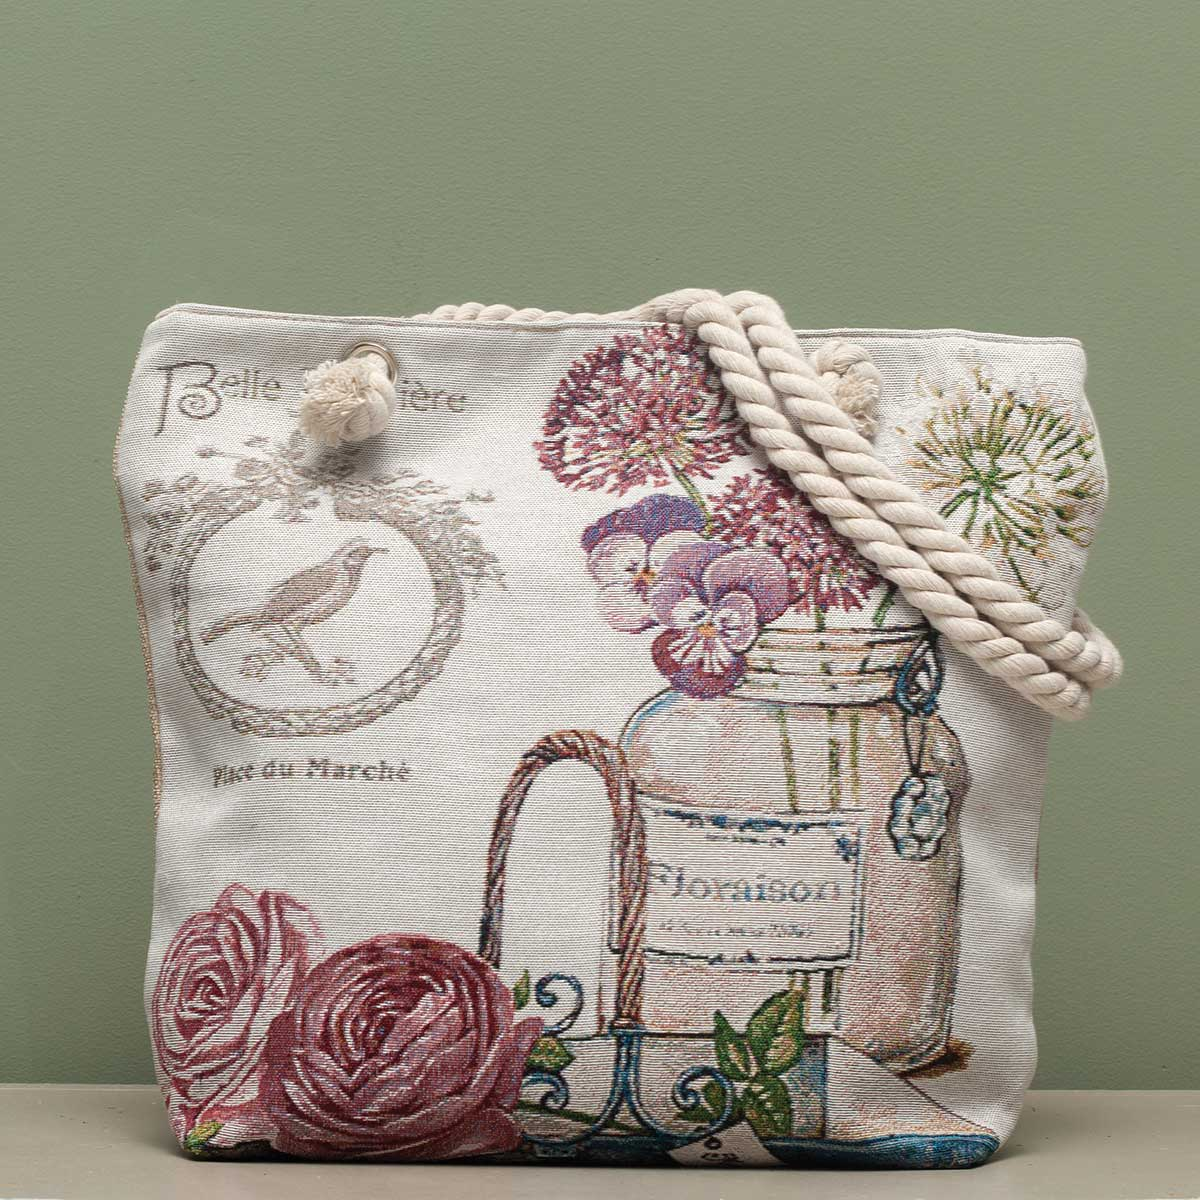 "French Garden Tapestry Bag 17.5""x5""x14"" with 10"" Shoulder Strap,"